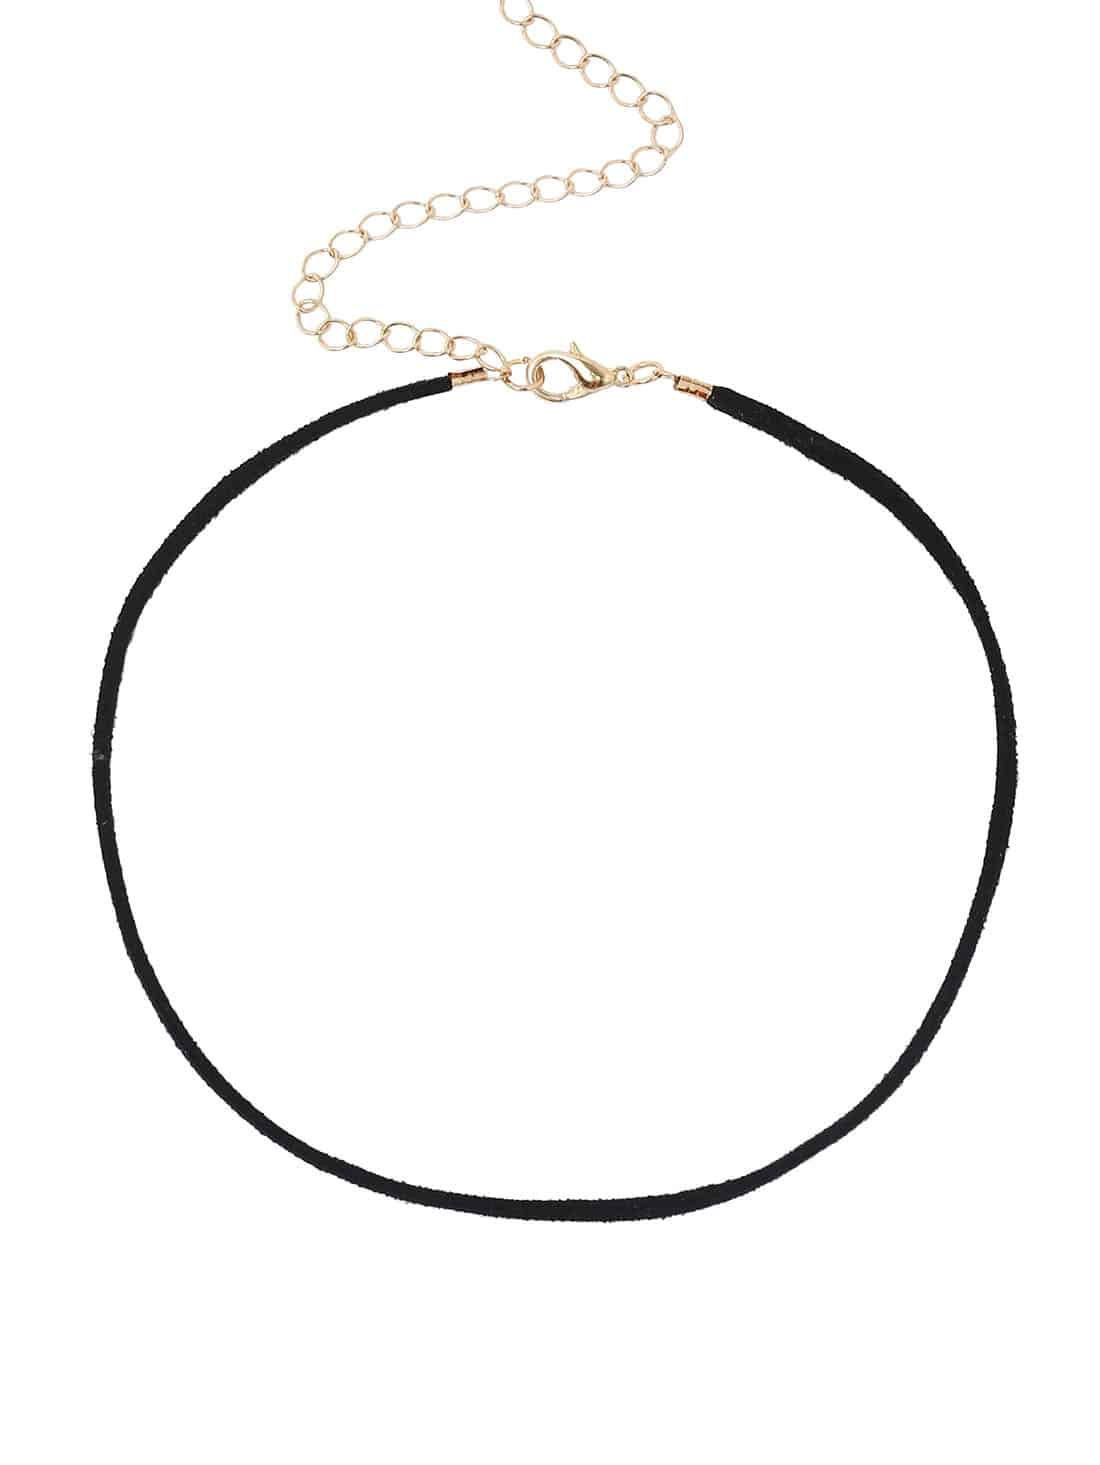 Black Faux Suede Casual Choker Necklace